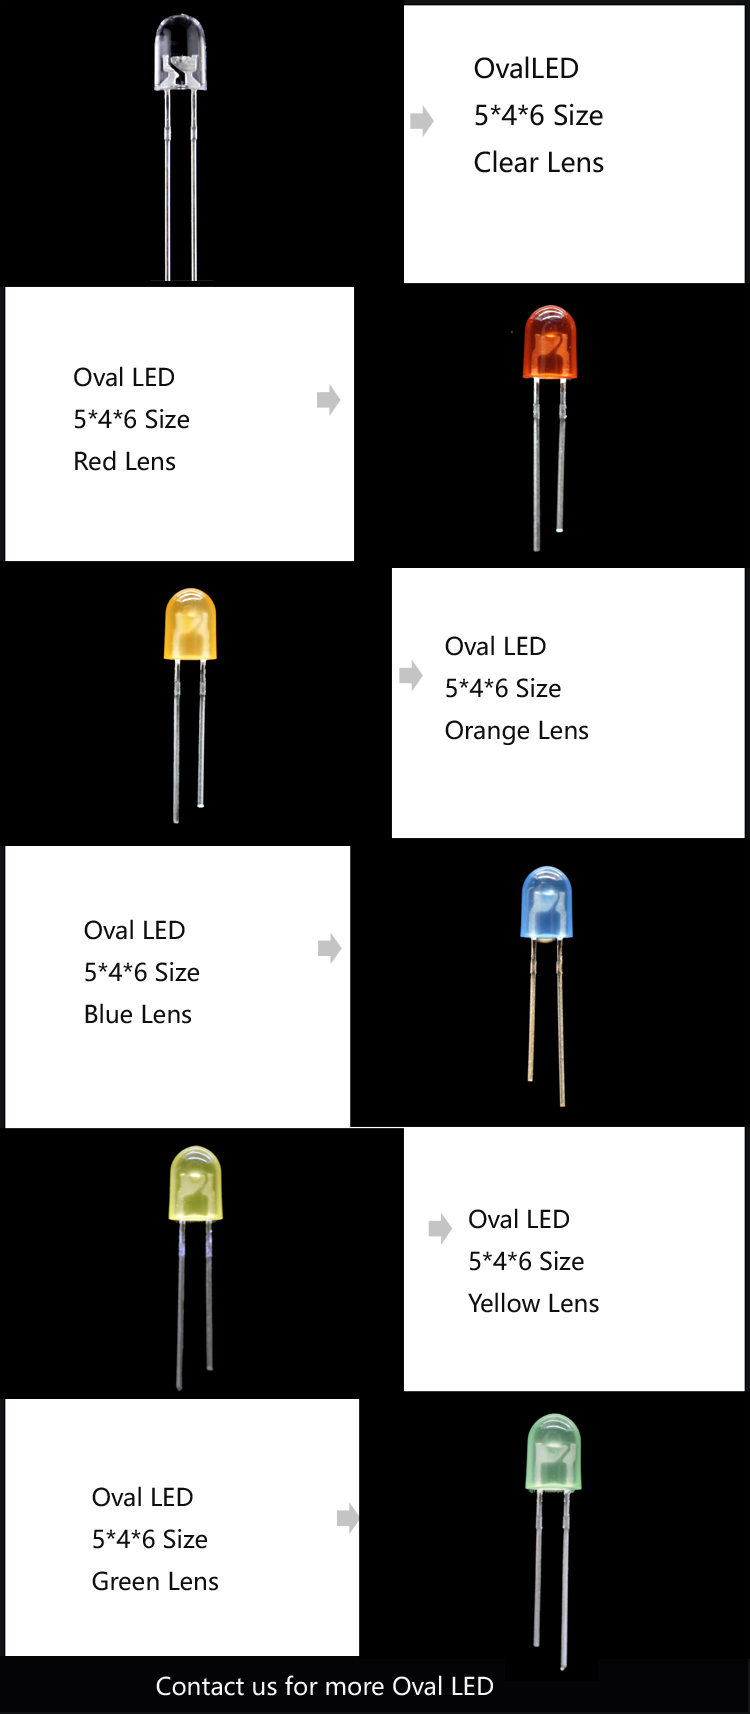 Oval LED - Through-hole LED